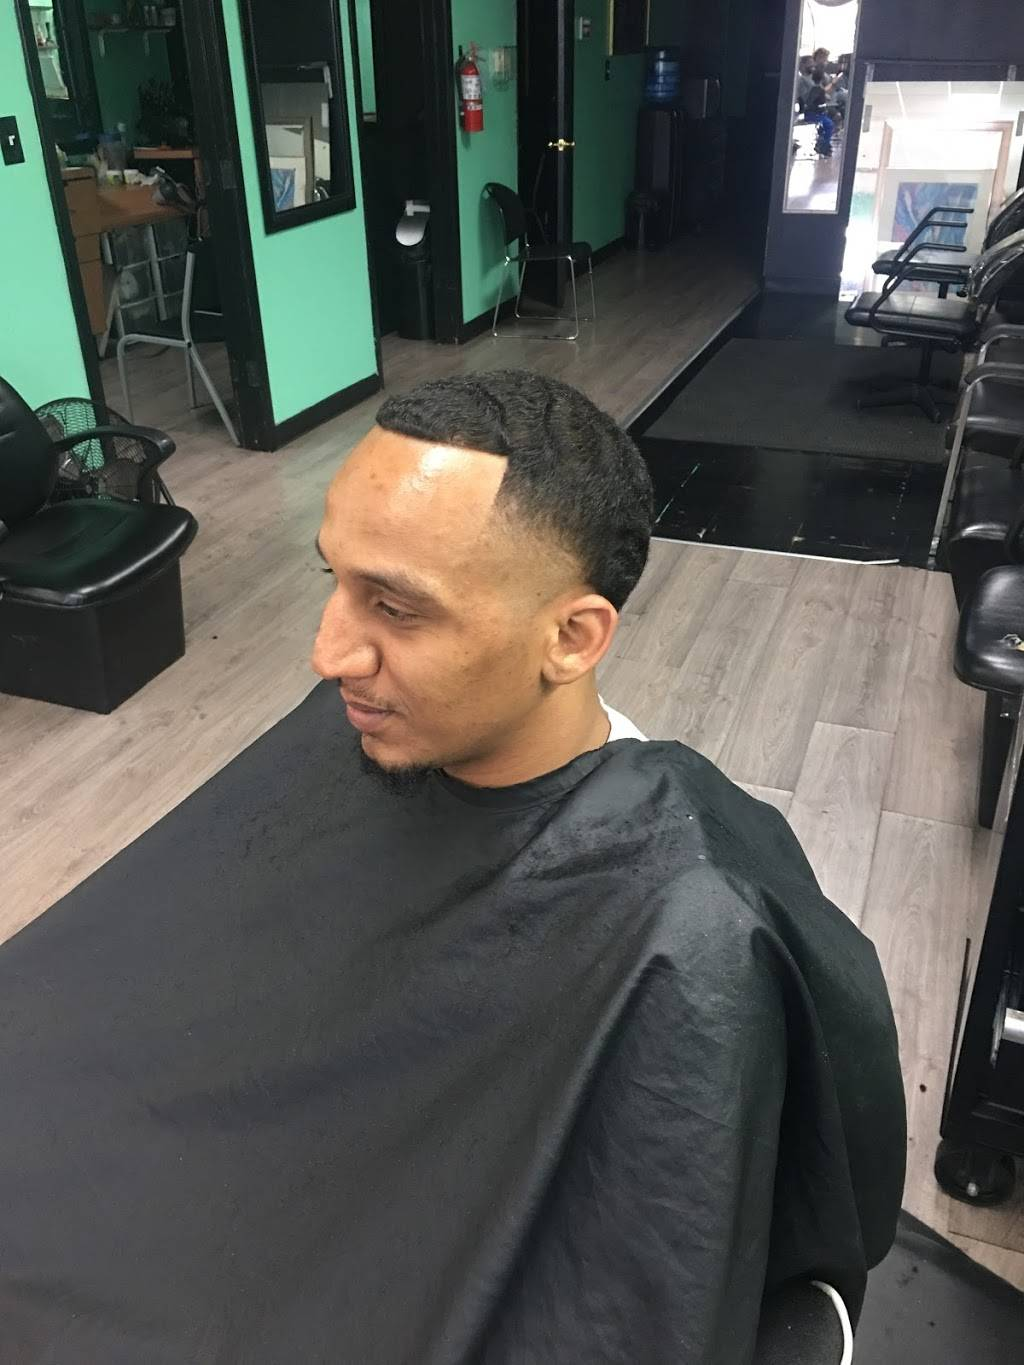 Eric C Master Barber - hair care  | Photo 8 of 8 | Address: 6900 South Fwy Suite 136, Fort Worth, TX 76134, USA | Phone: (817) 566-4369